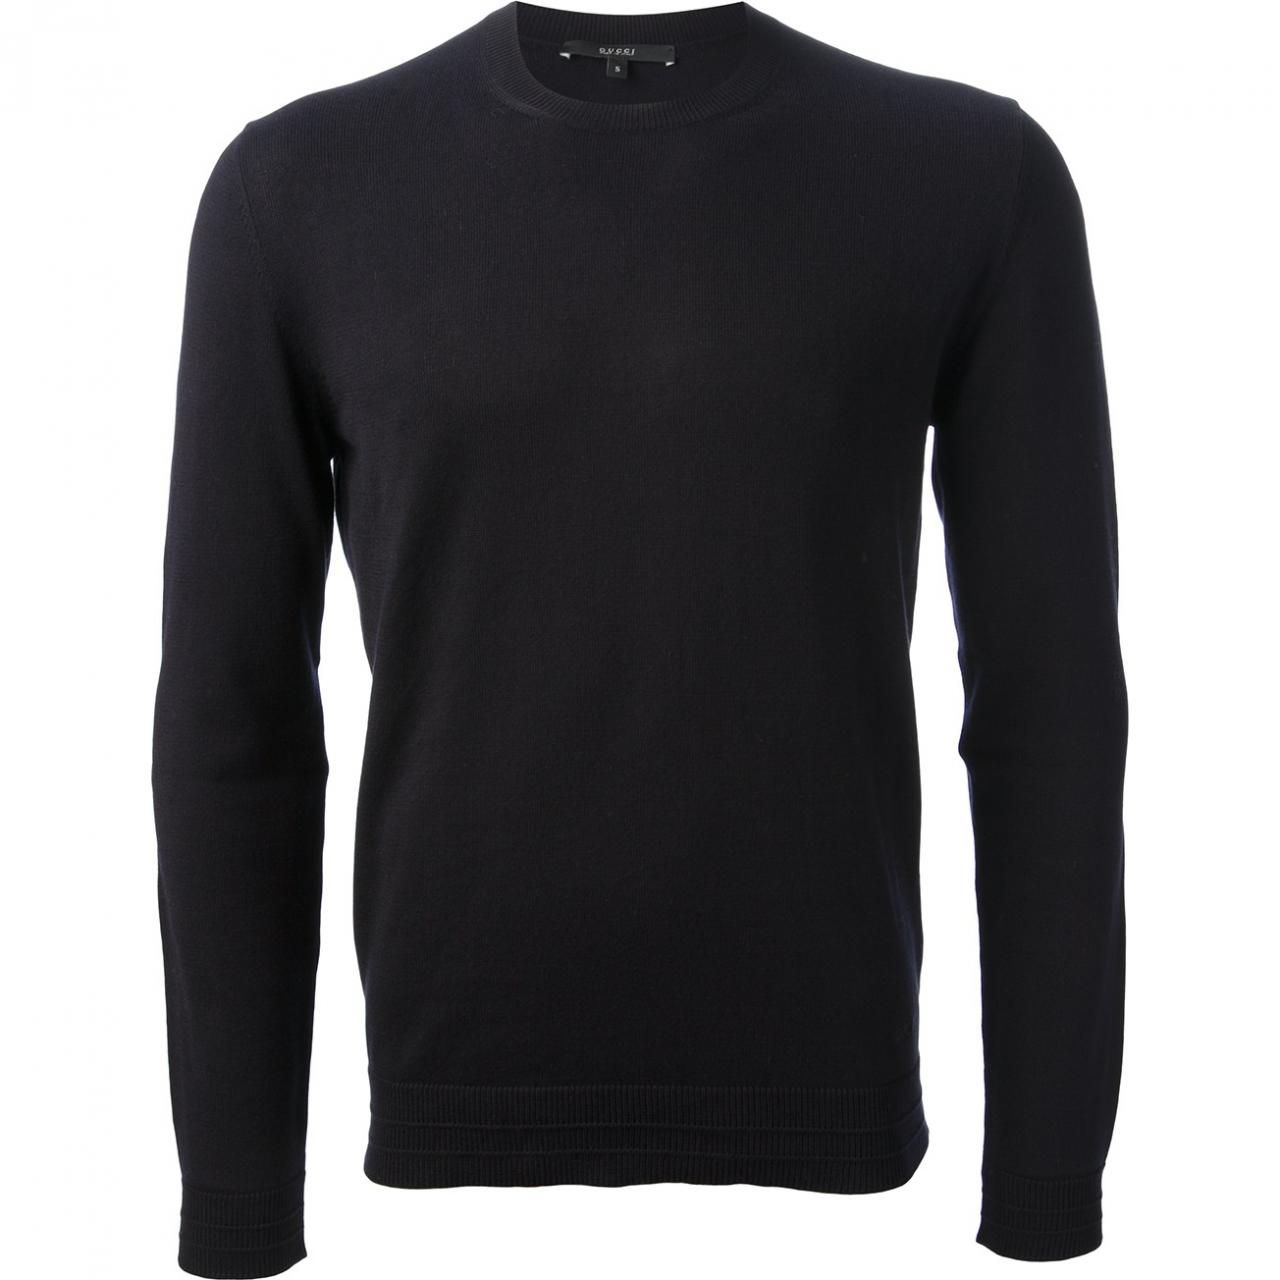 Gucci Slim Fit Knit Sweater as seen on Tom Hiddleston